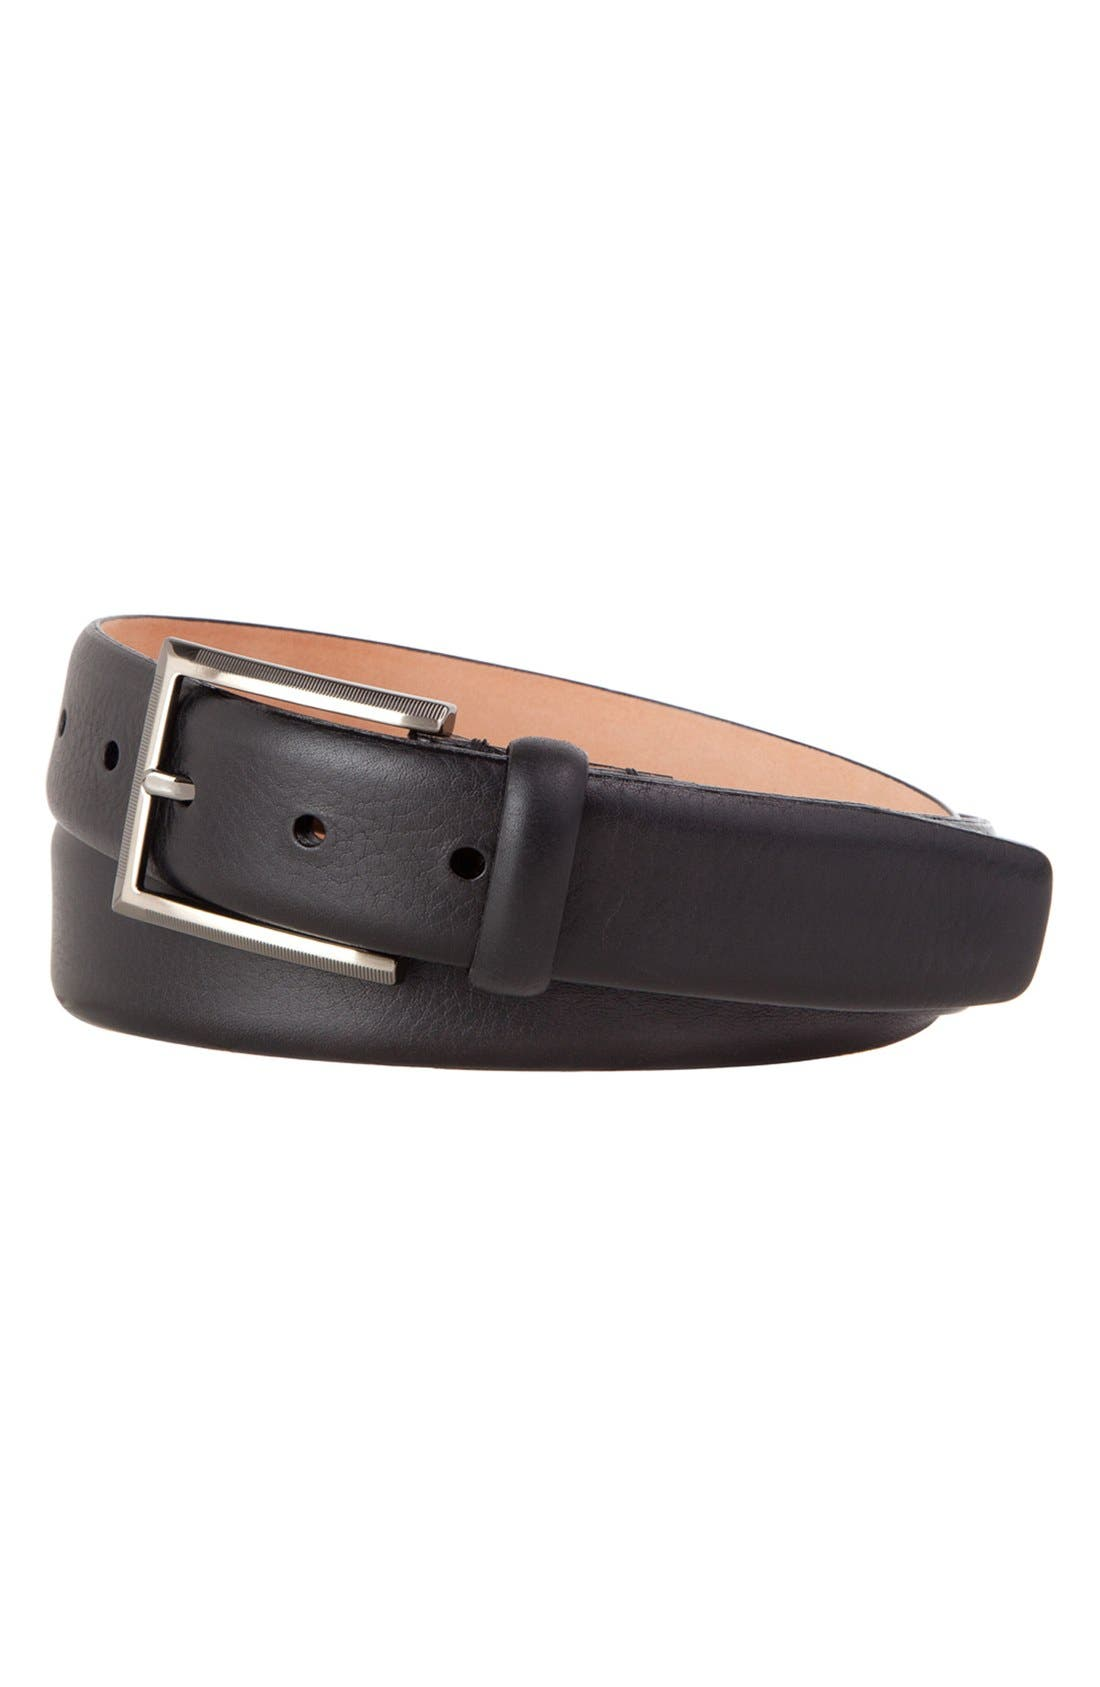 Tommy Bahama Leather Belt